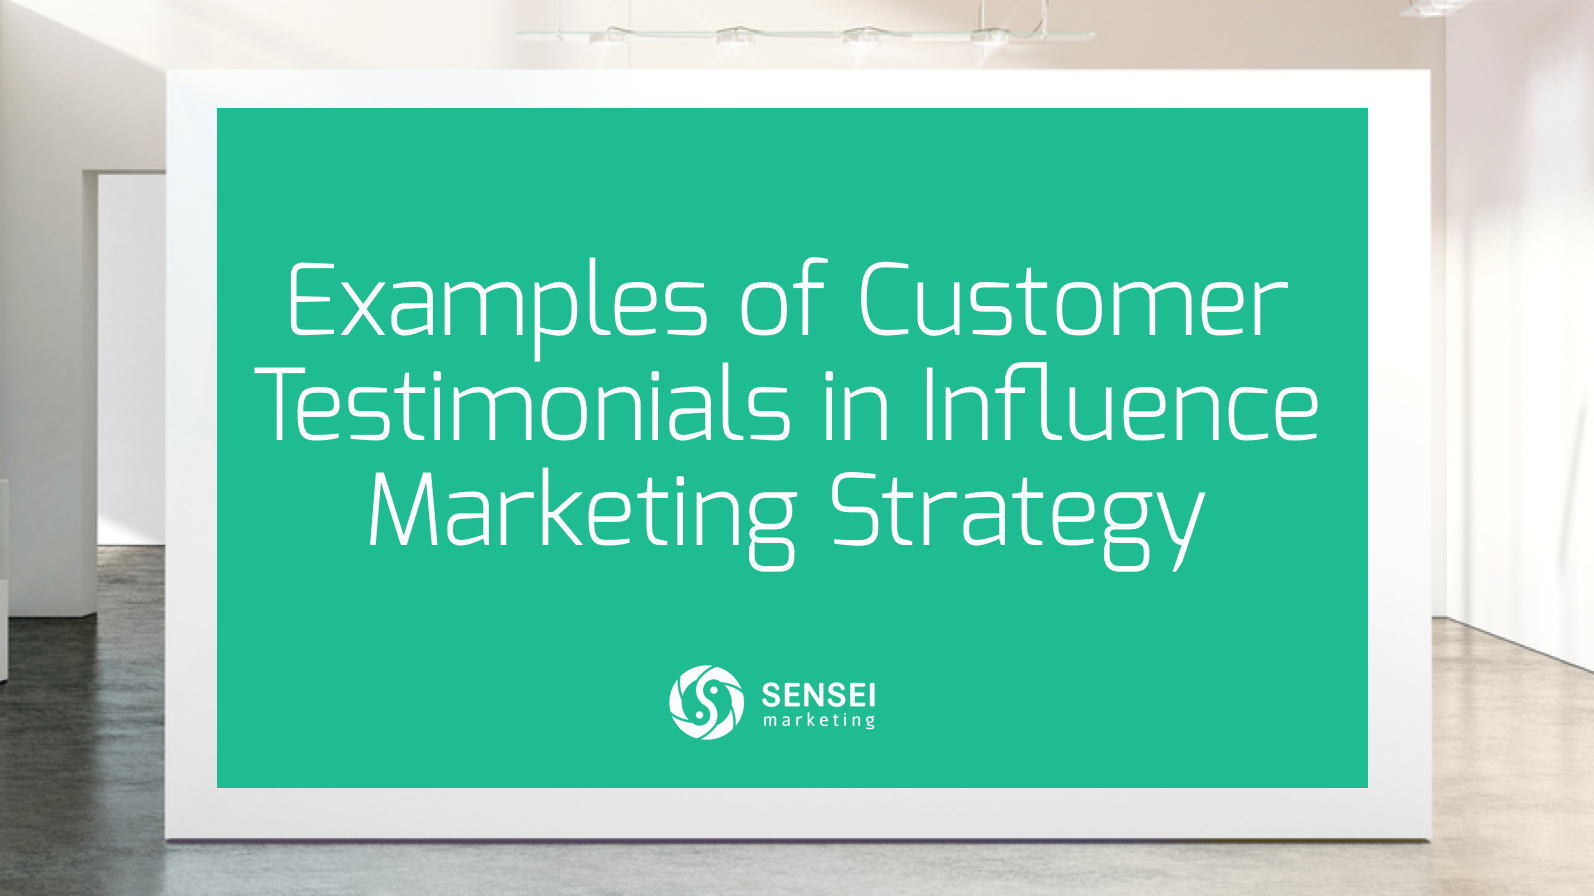 Examples of Customer Testimonials in Influence Marketing